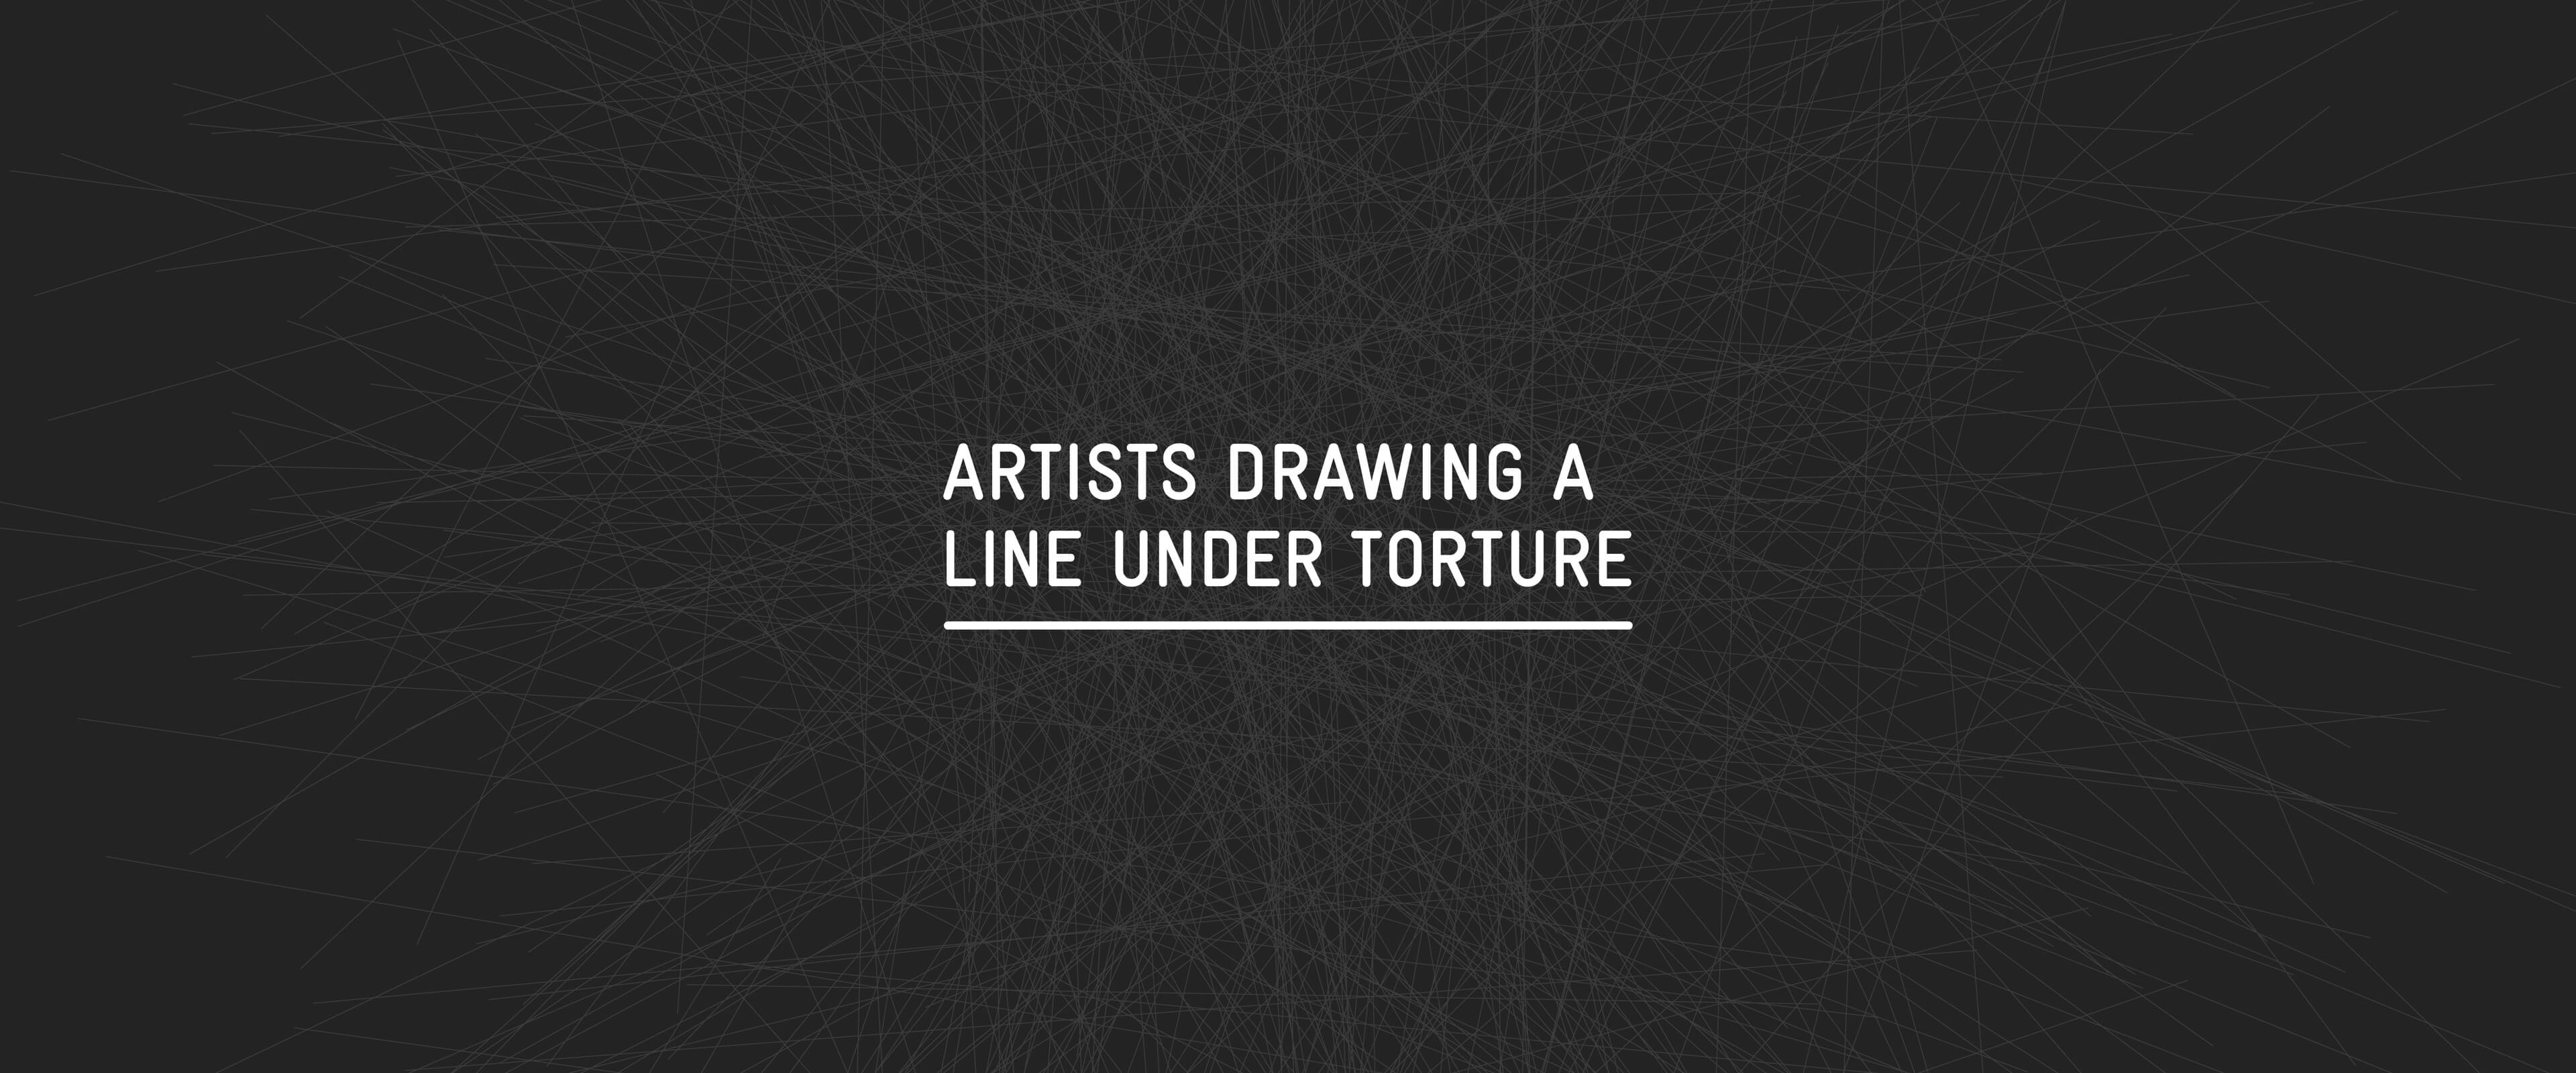 Philip_Mawer_Freedom_From_Torture_Header